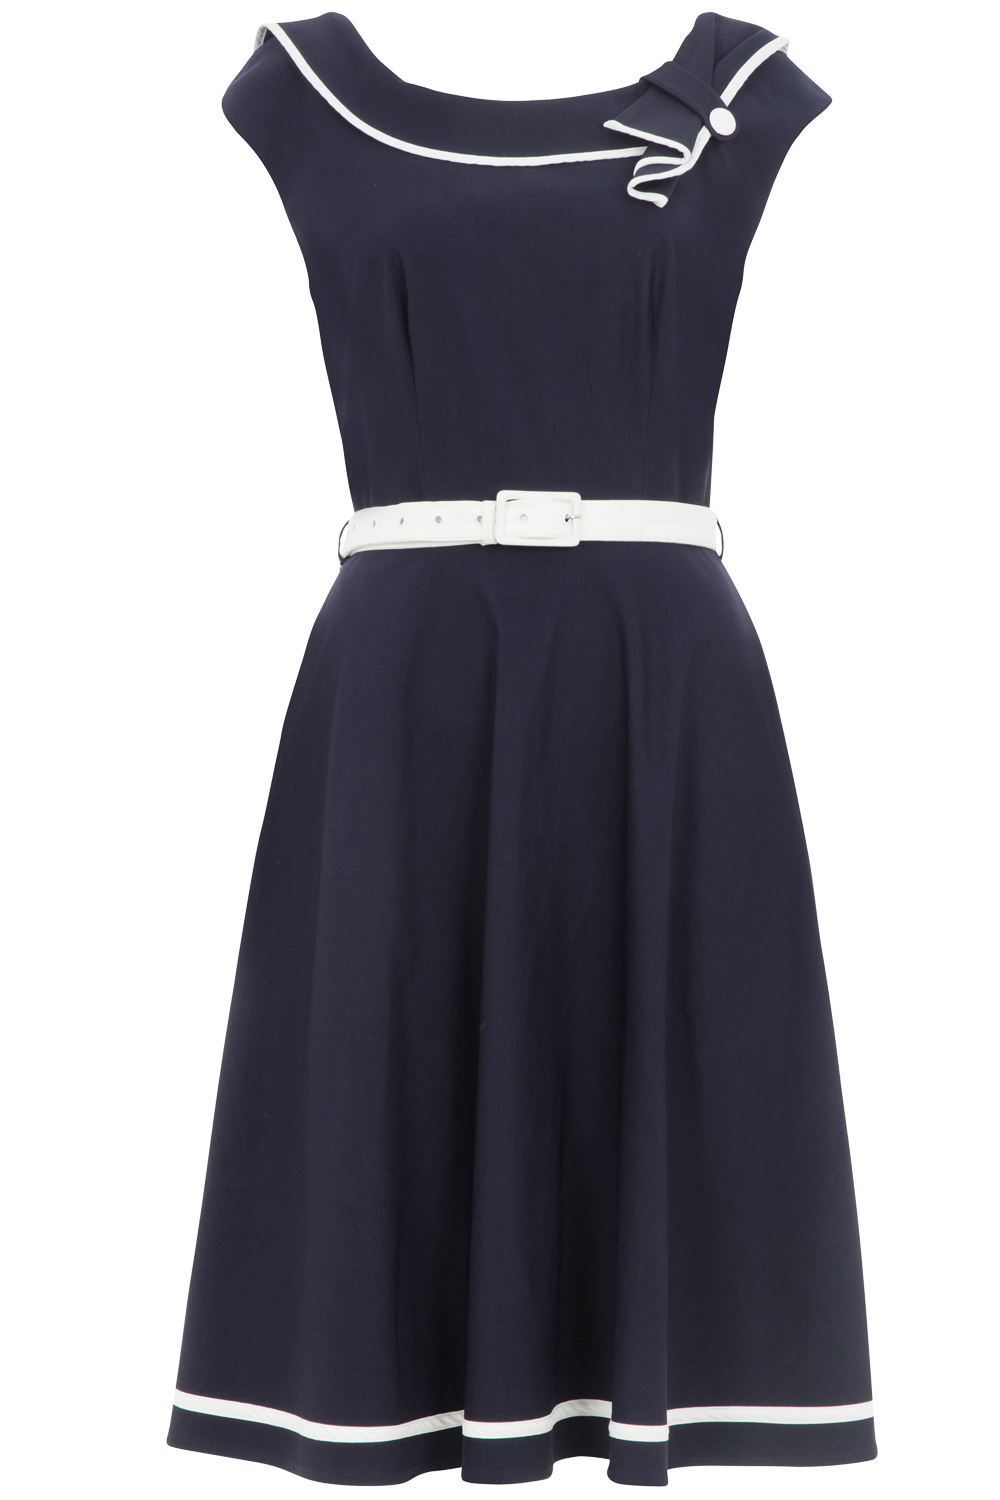 Voodoo Vixen Navy Nora Dress